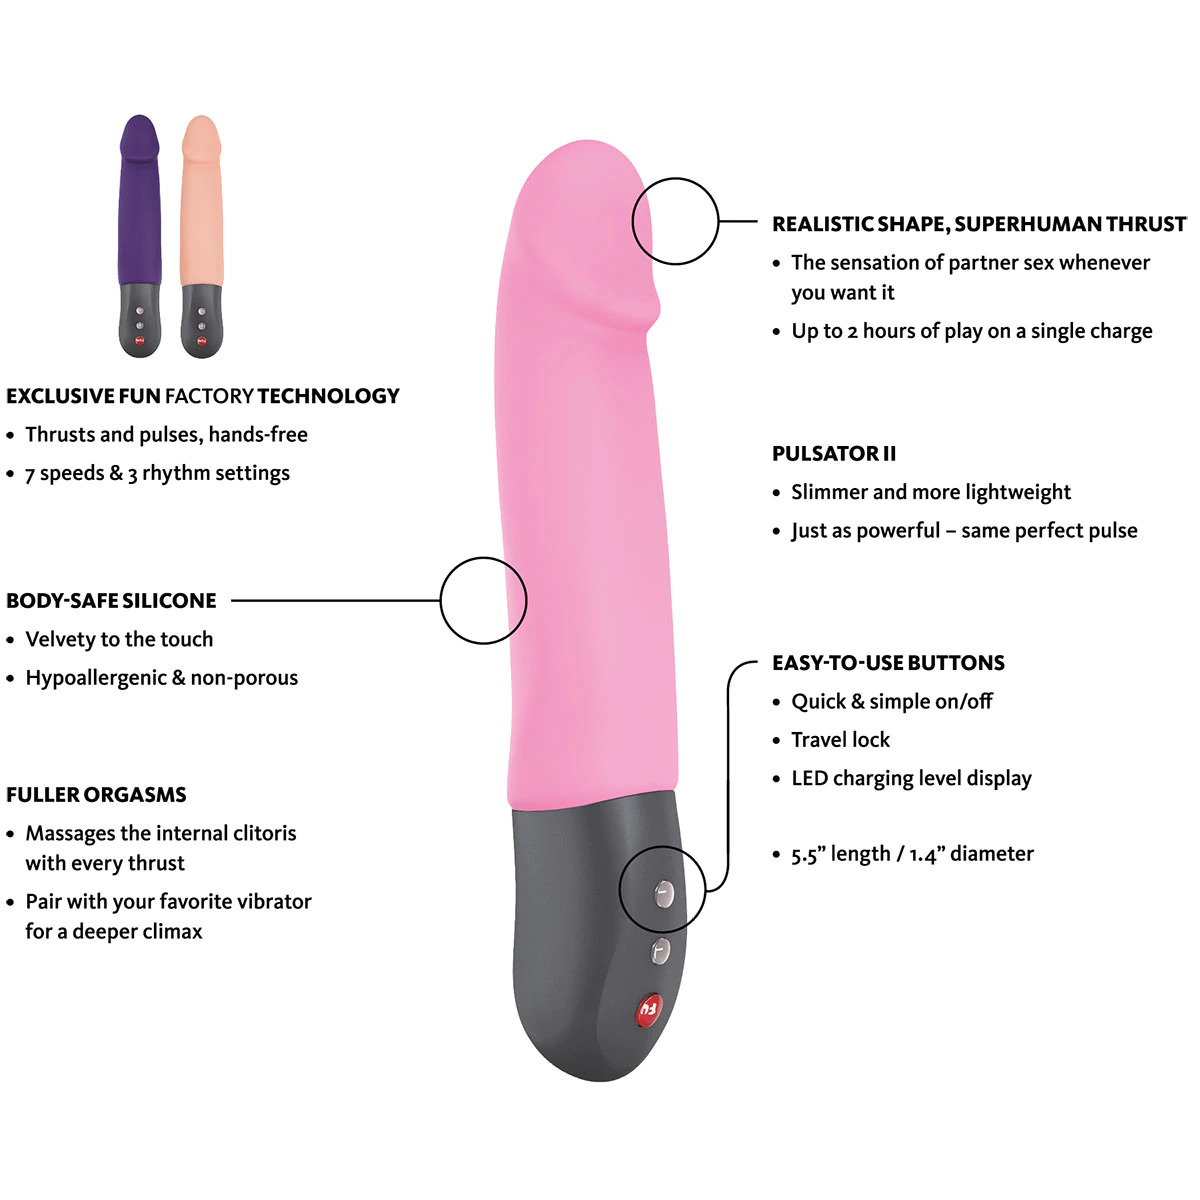 fun-factory-stronic-real-pulsator-sex-toy-features-2.jpg